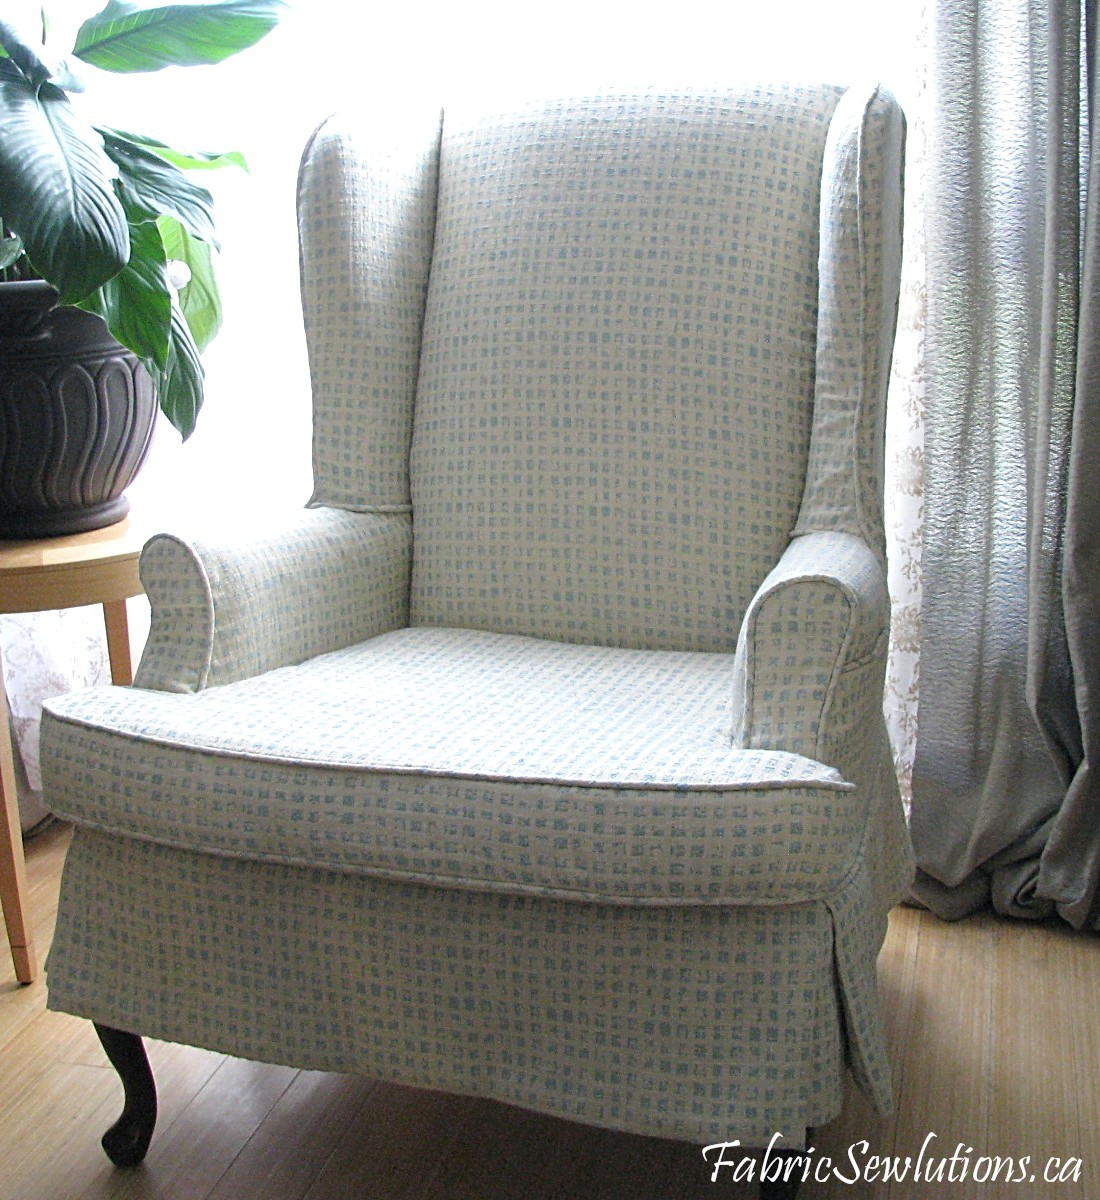 Sewlutions' World: Wingback Chair Slipcover